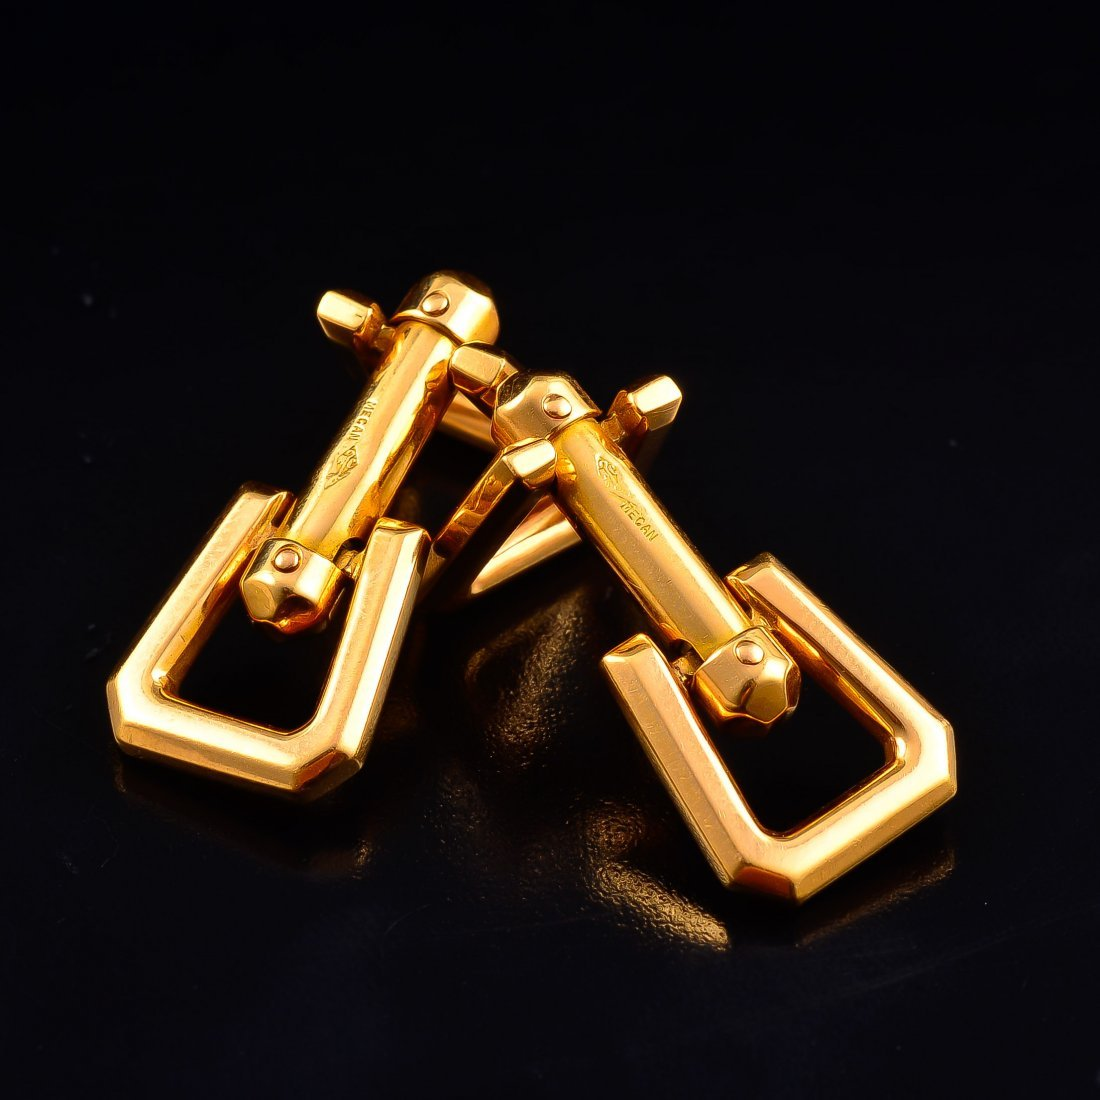 French gold cufflinks by Mecan - 3